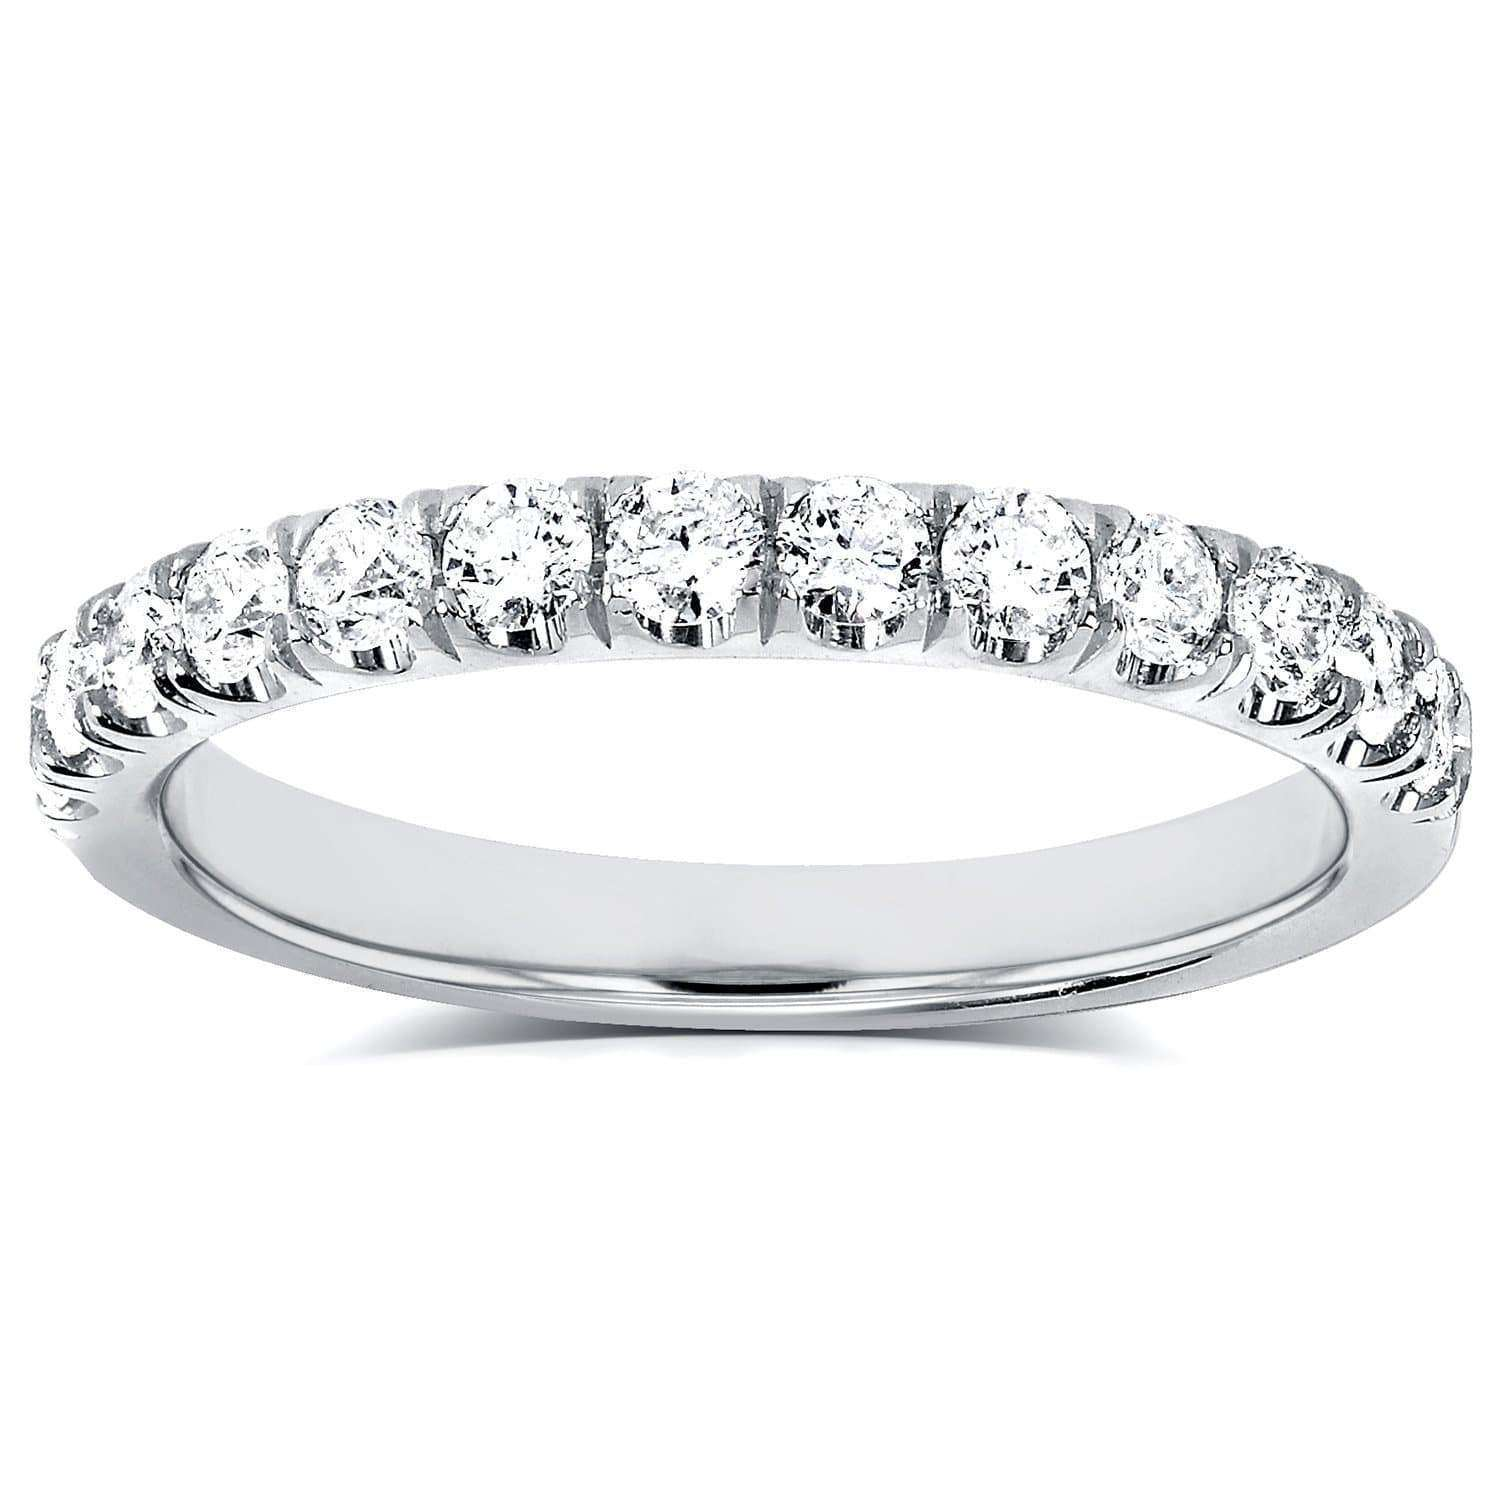 COMFORT FIT FRENCH PAVE LAB GROWN DIAMOND BAND